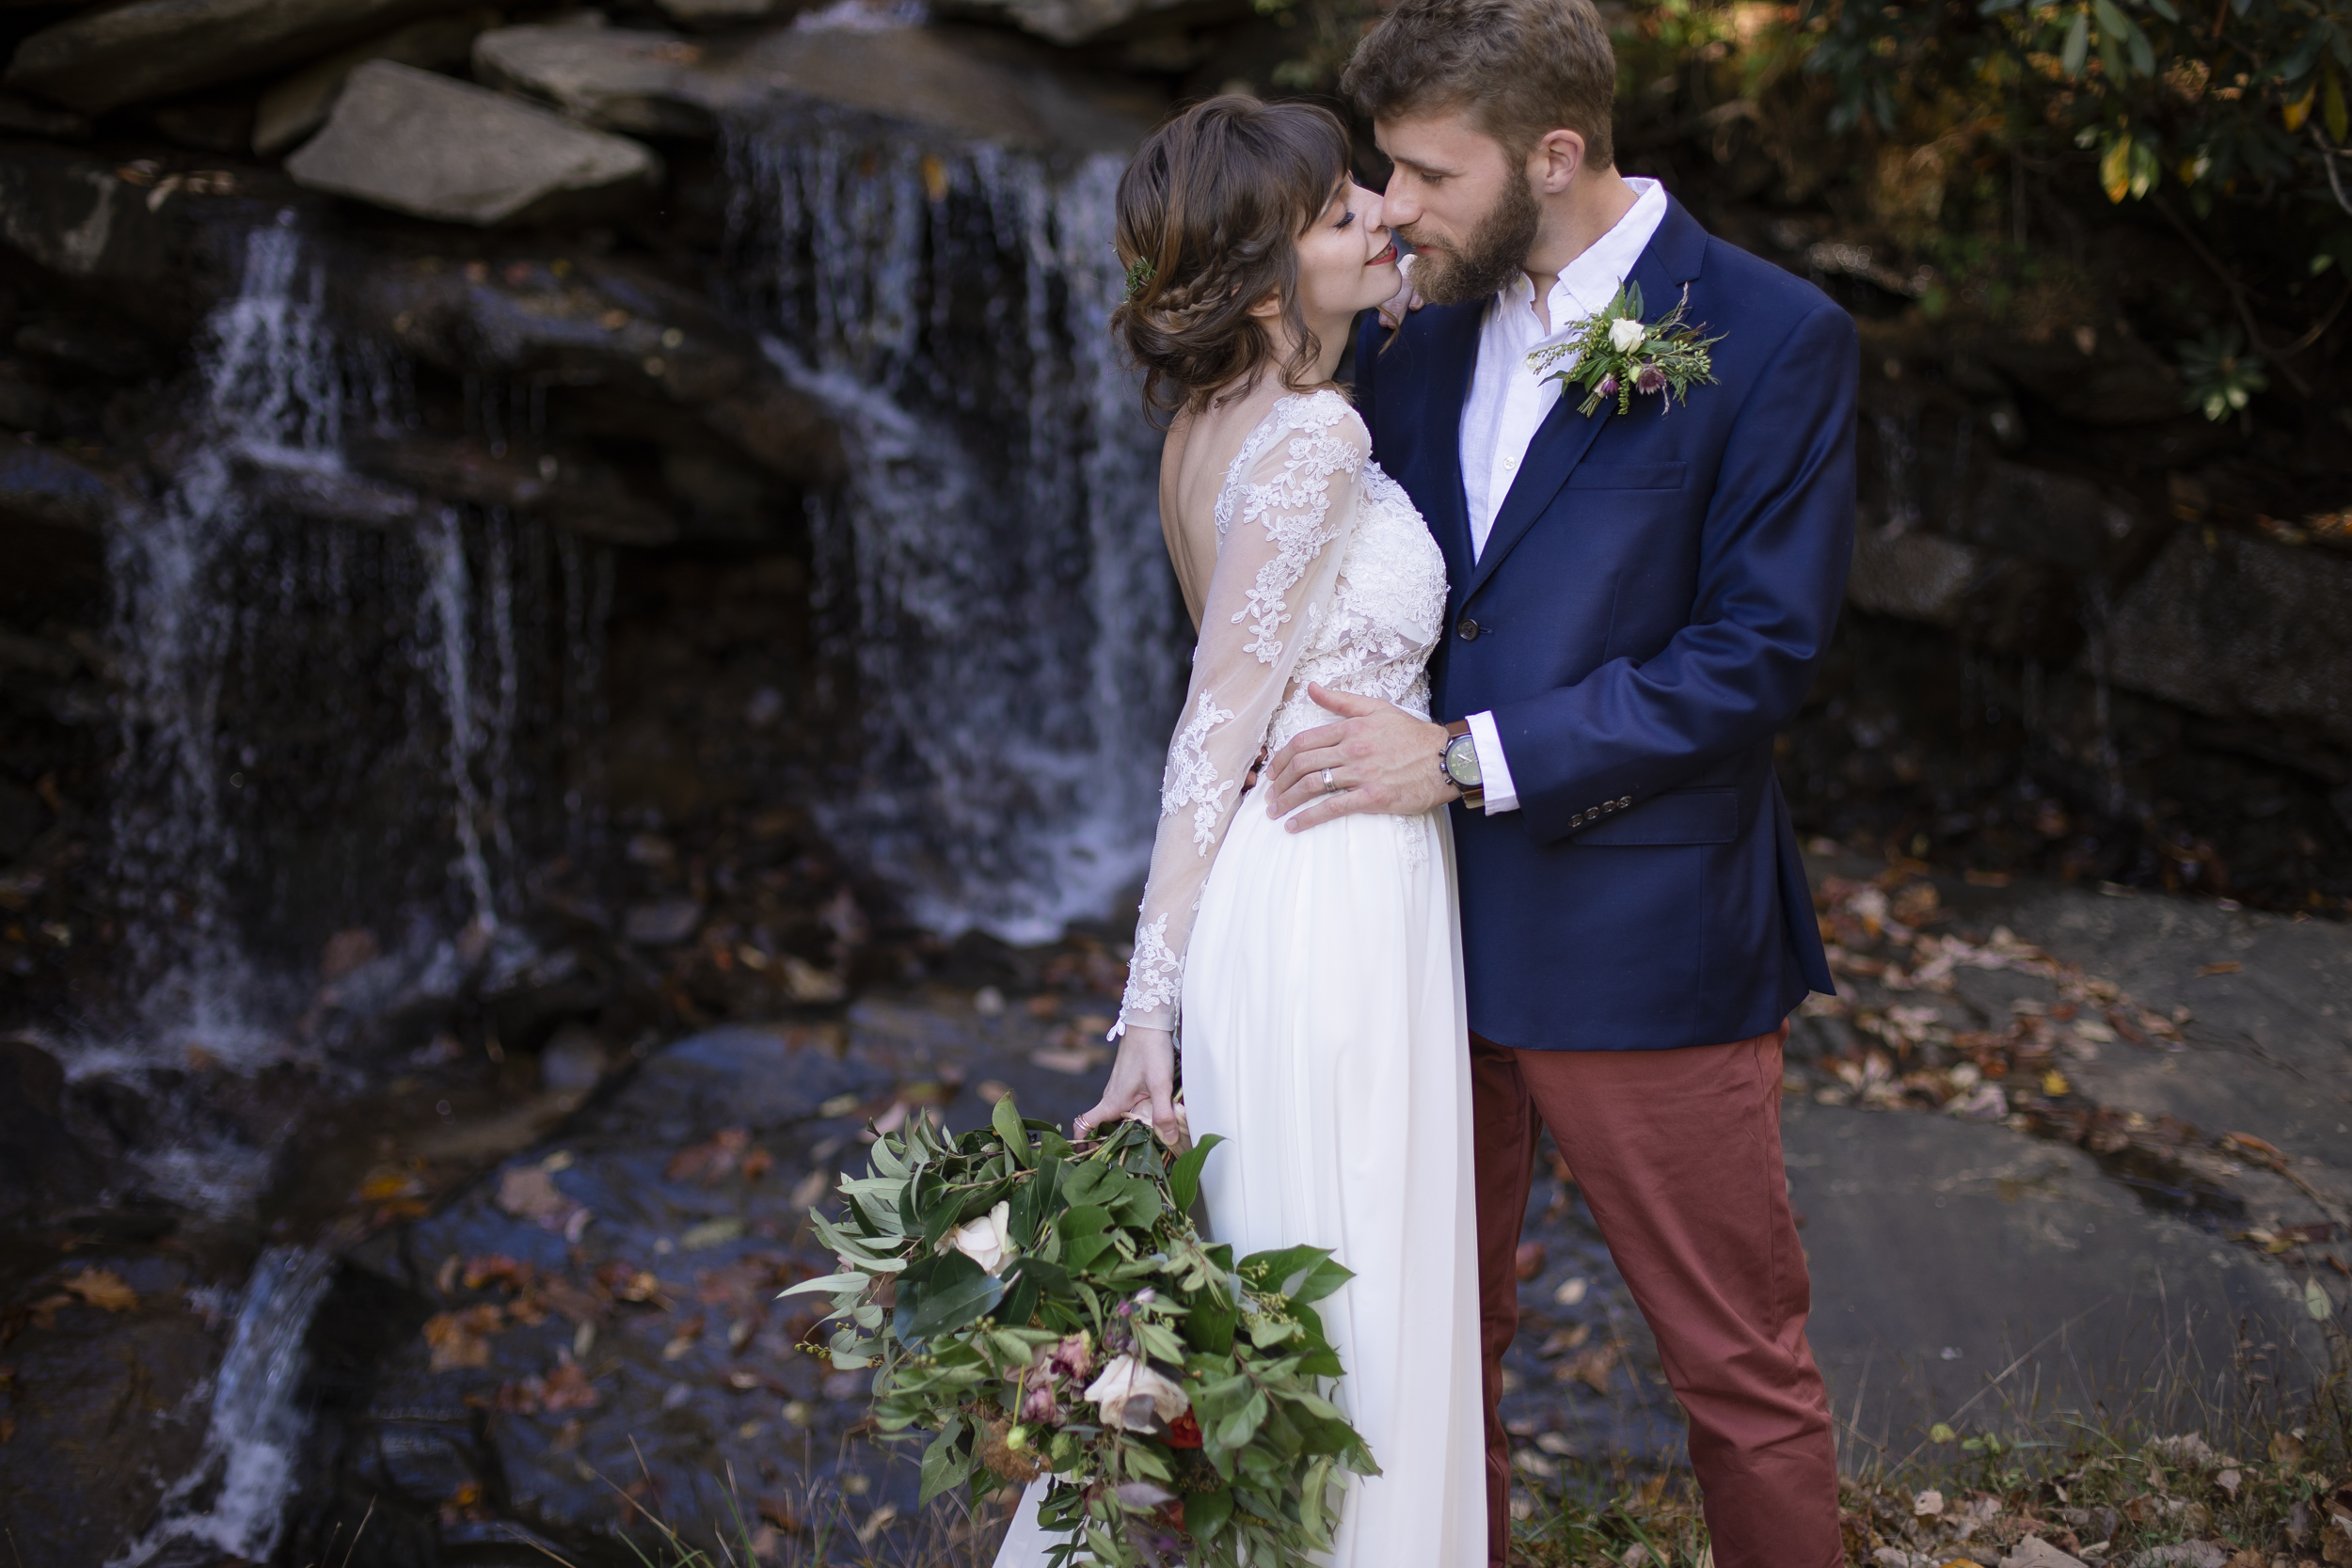 Laurel Falls Wedding October 2018_Allison and Josh__Lola Salon_Flora_Photo by Studio Misha Photography-109.jpg